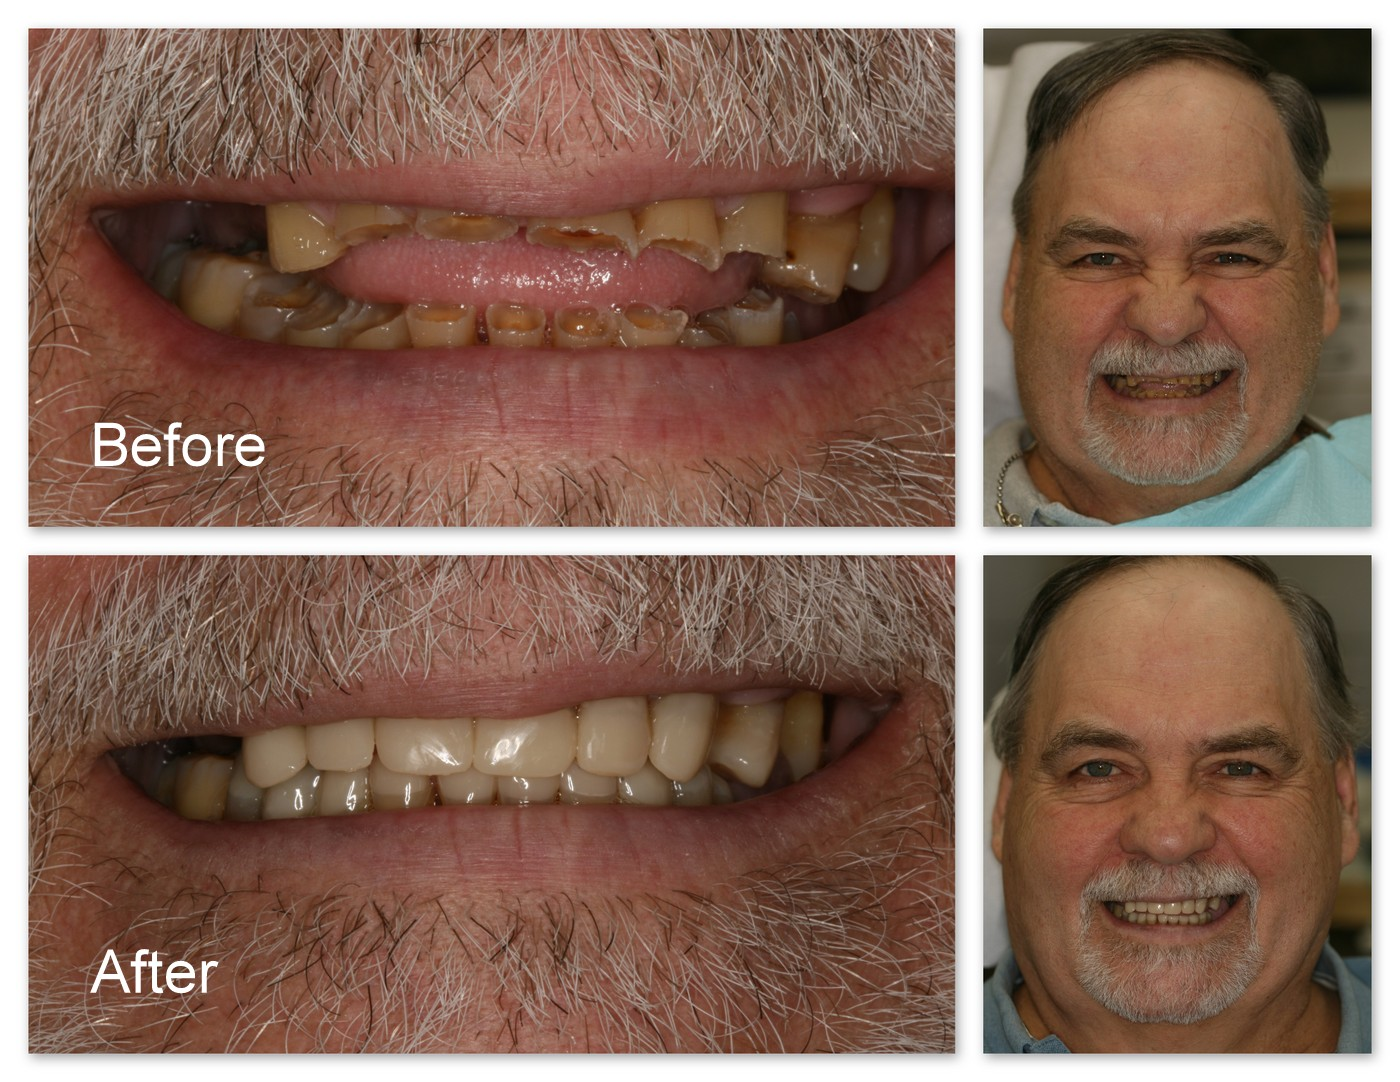 Before- This patient suffers from severe erosion of his teeth. After- Dr. Jack Hosner of Portage, MI bonded composite resin tooth colored restorations to restore and protect all of his worn teeth which greatly improved his overall esthetics. and cost less than half of porcelain crowns.